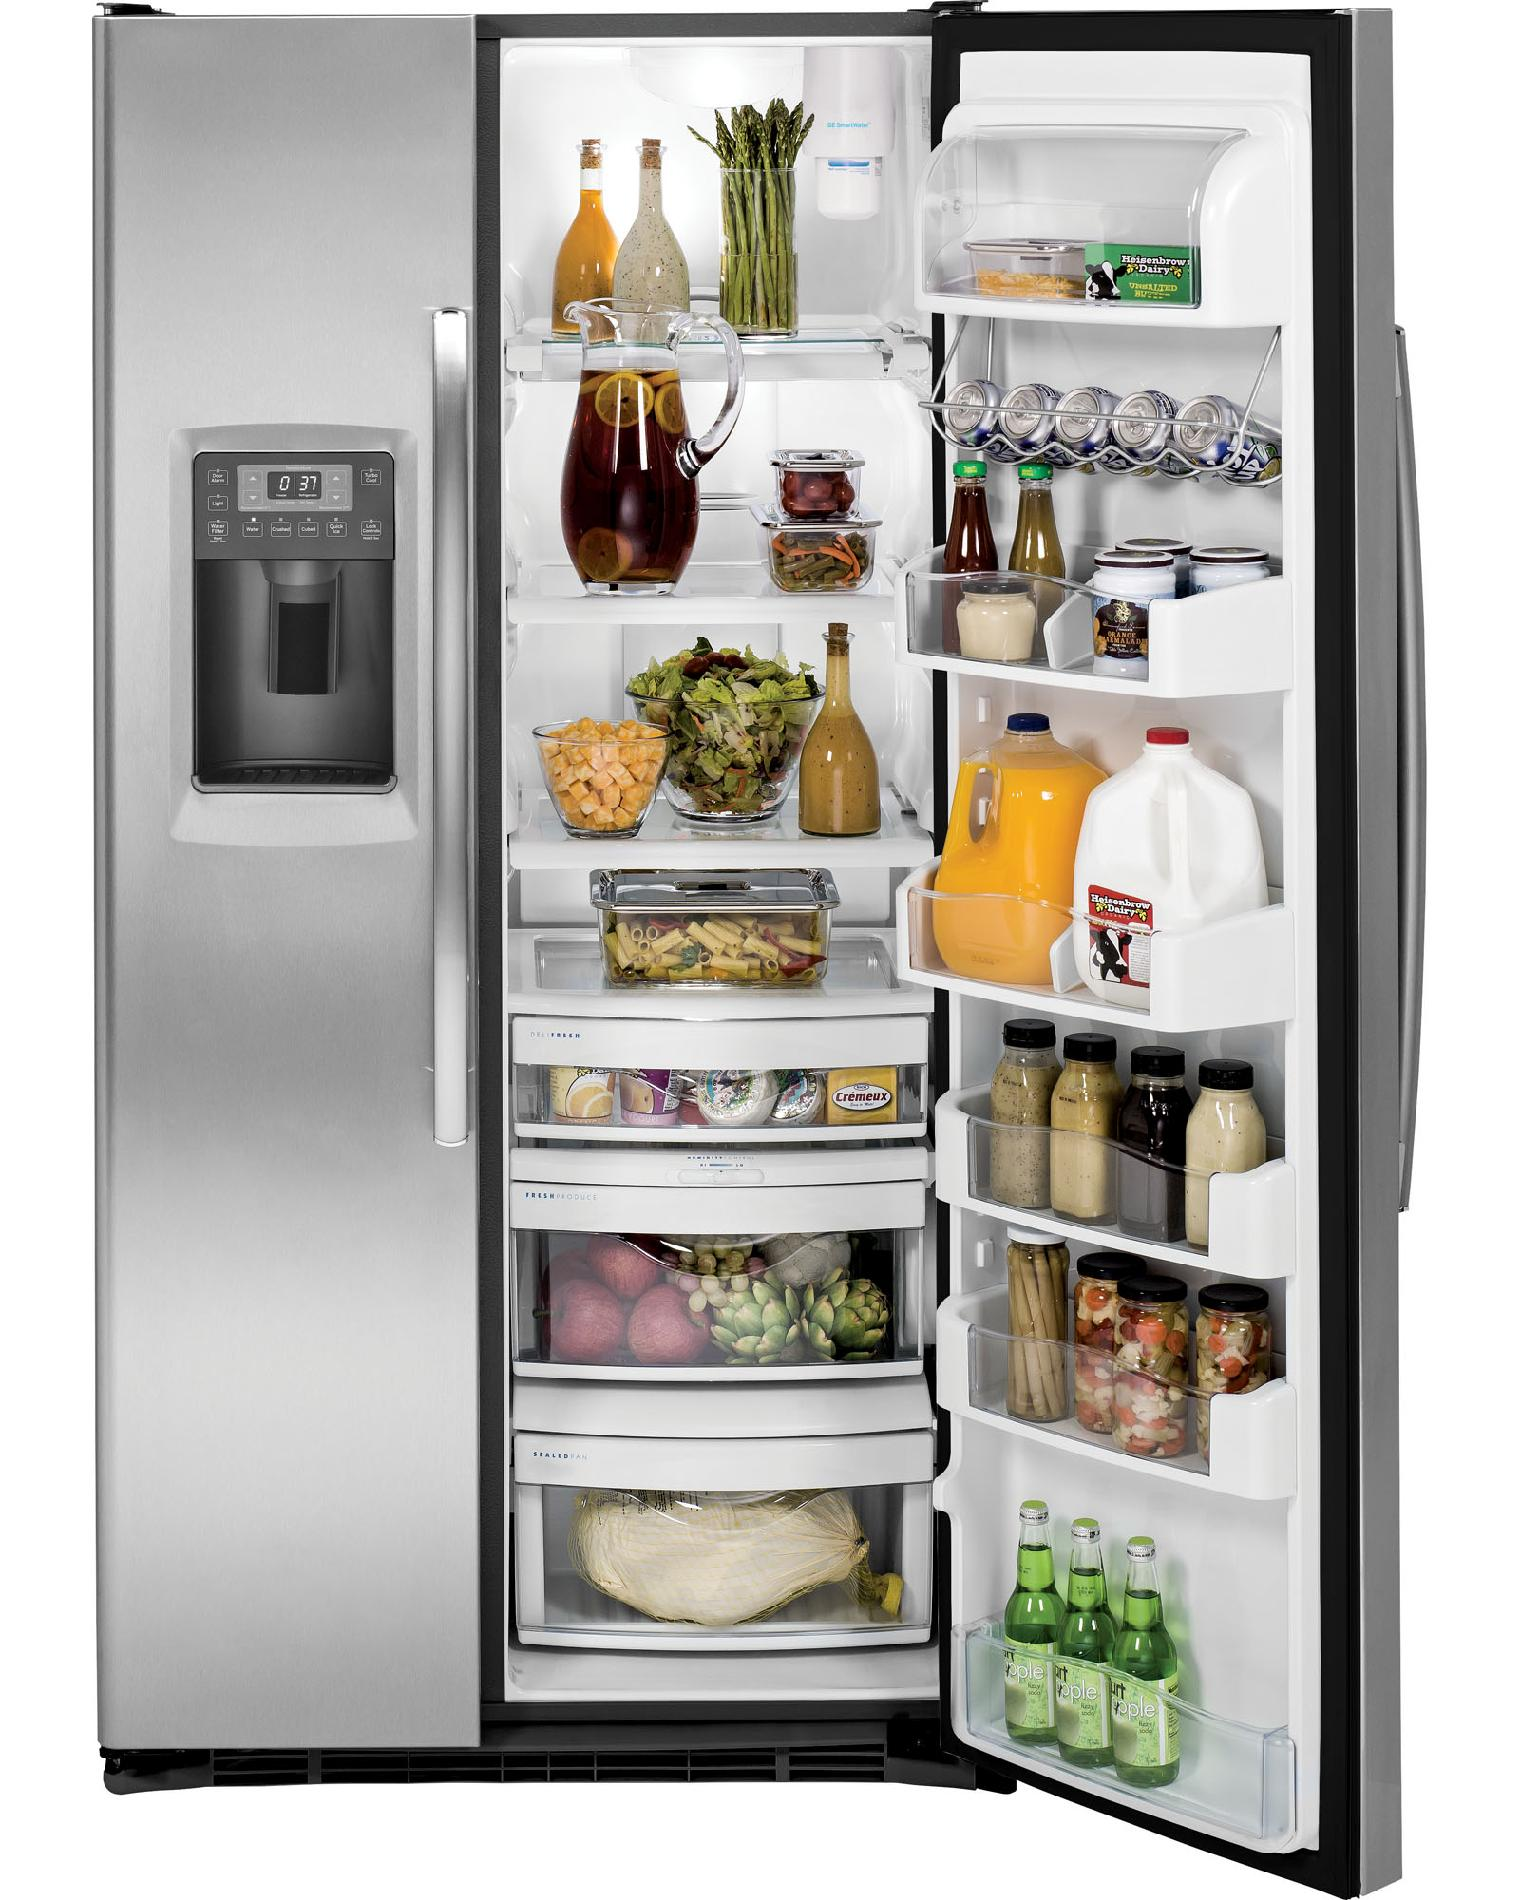 GE Profile 24.6 cu. ft. Counter-Depth Side-by-Side Refrigerator - Stainless Steel